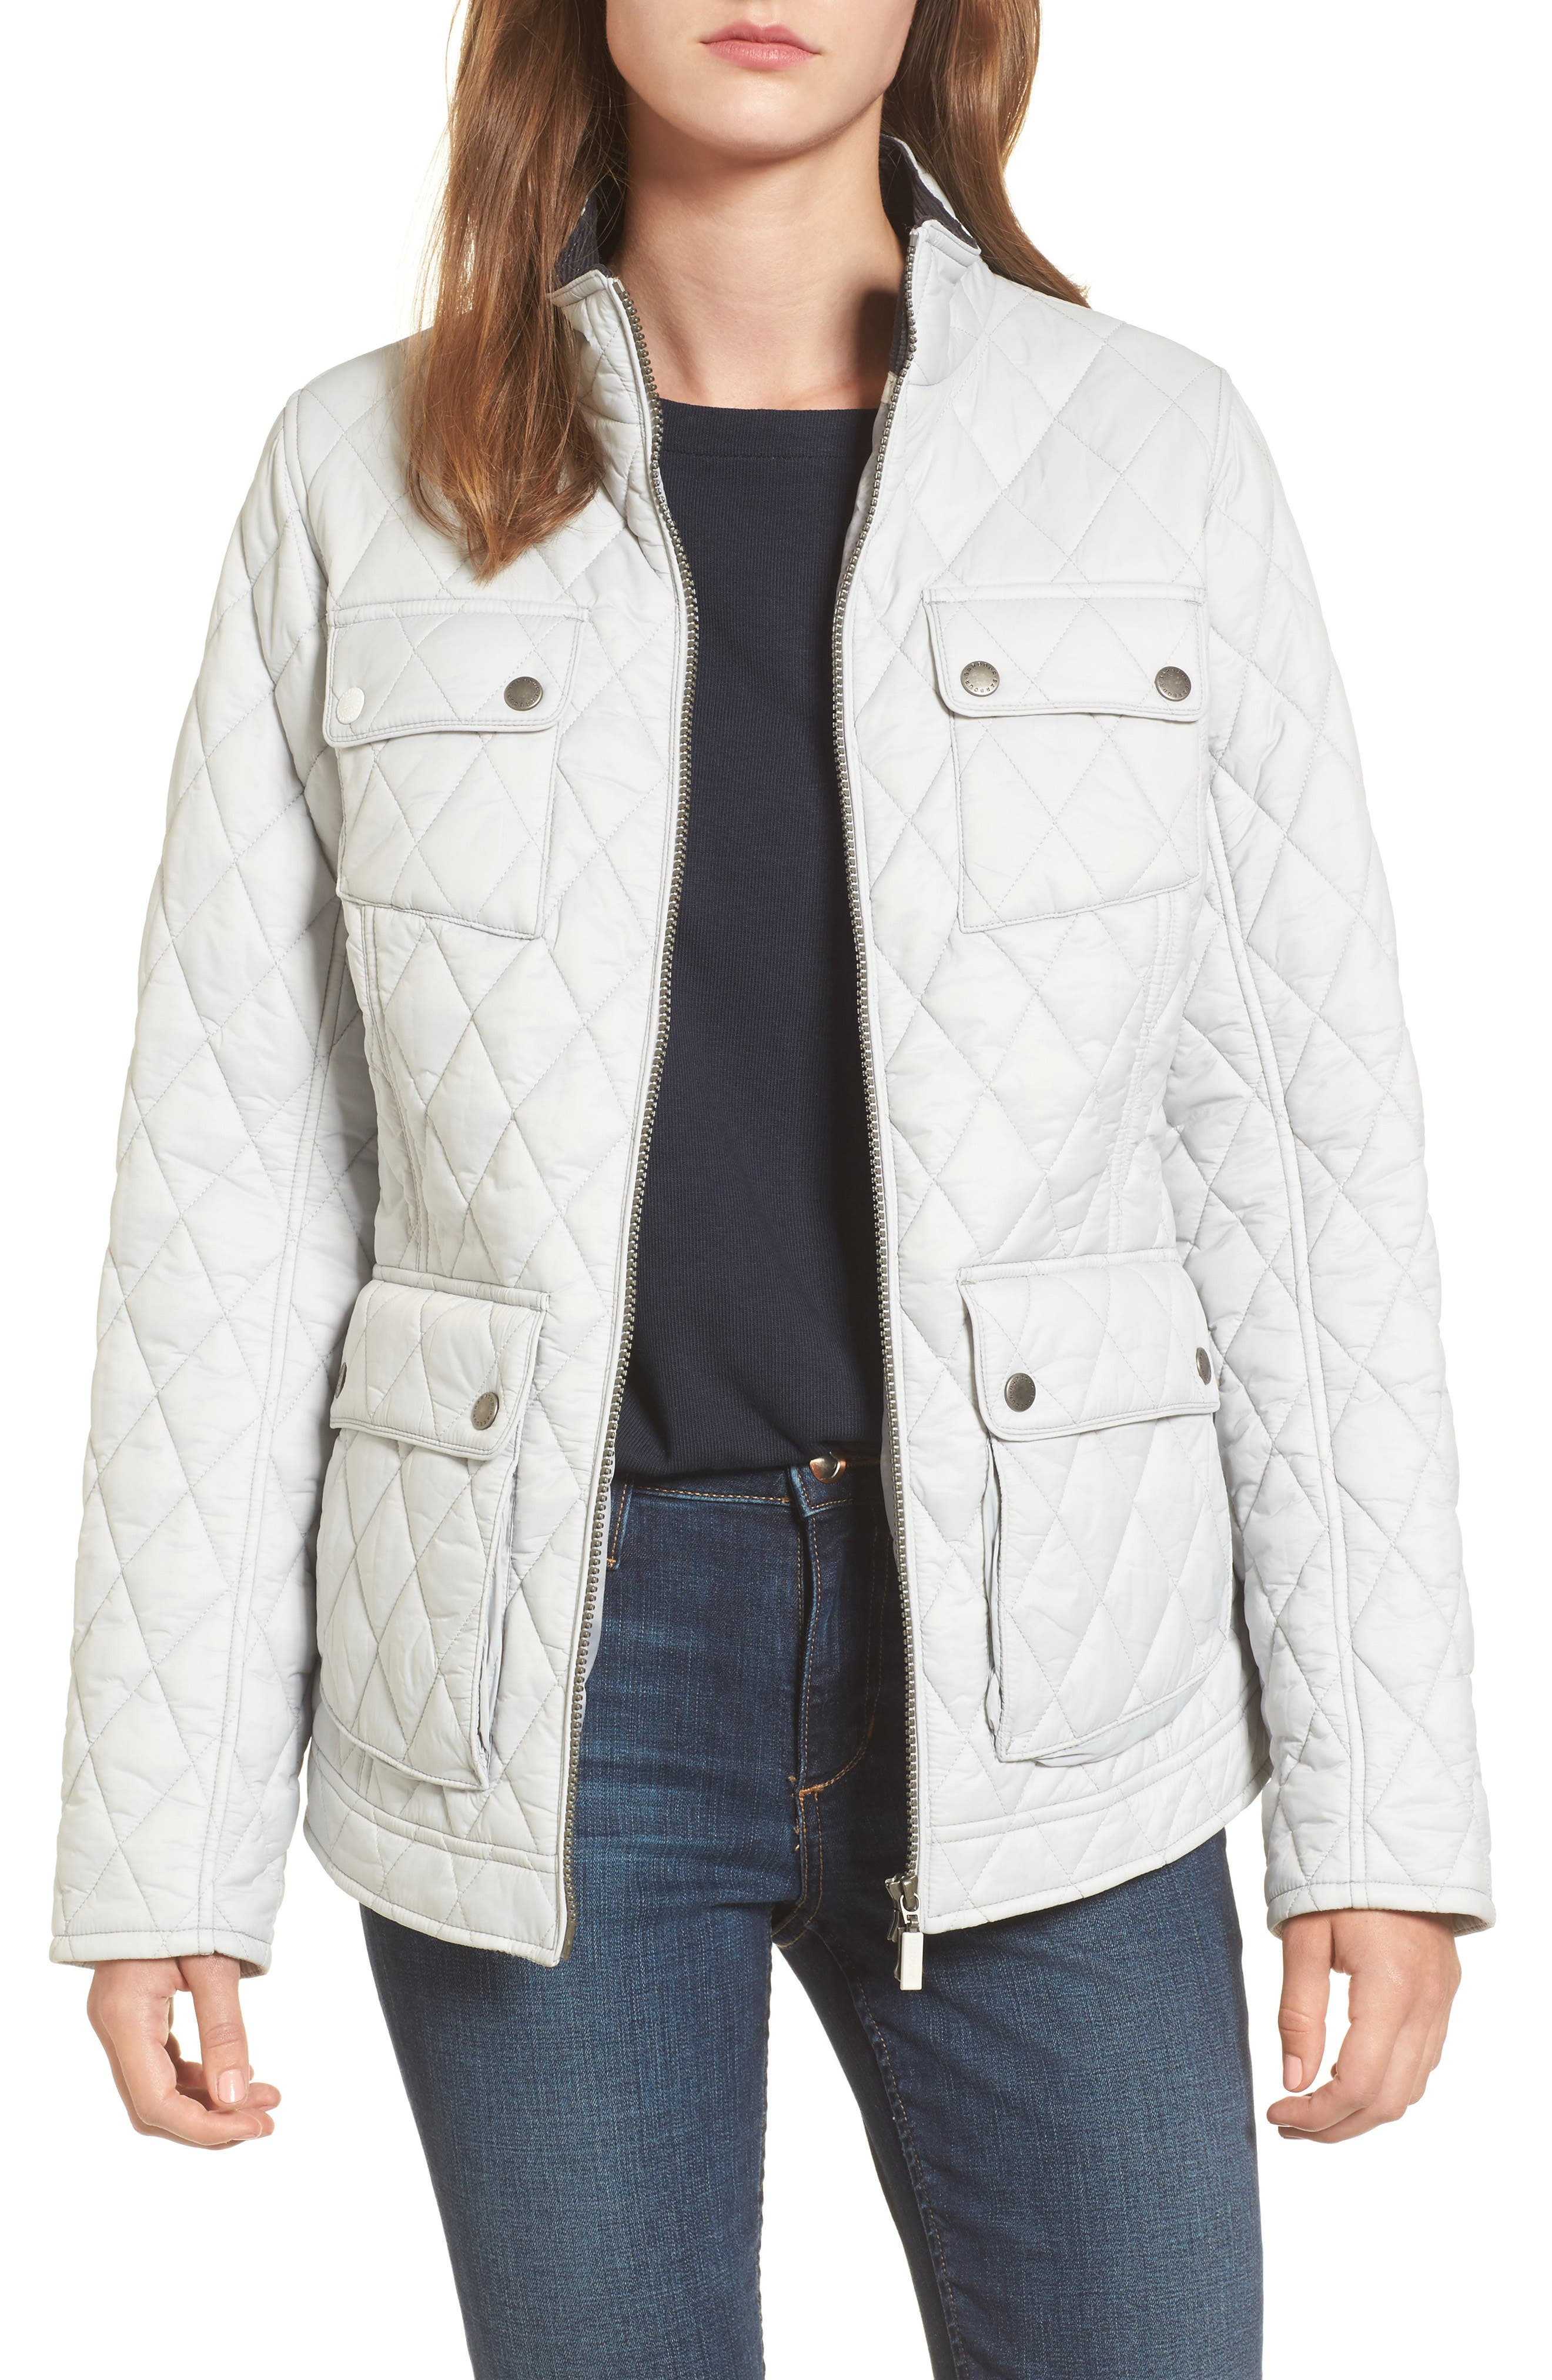 Dolostone Quilted Jacket,                             Main thumbnail 1, color,                             Ice White